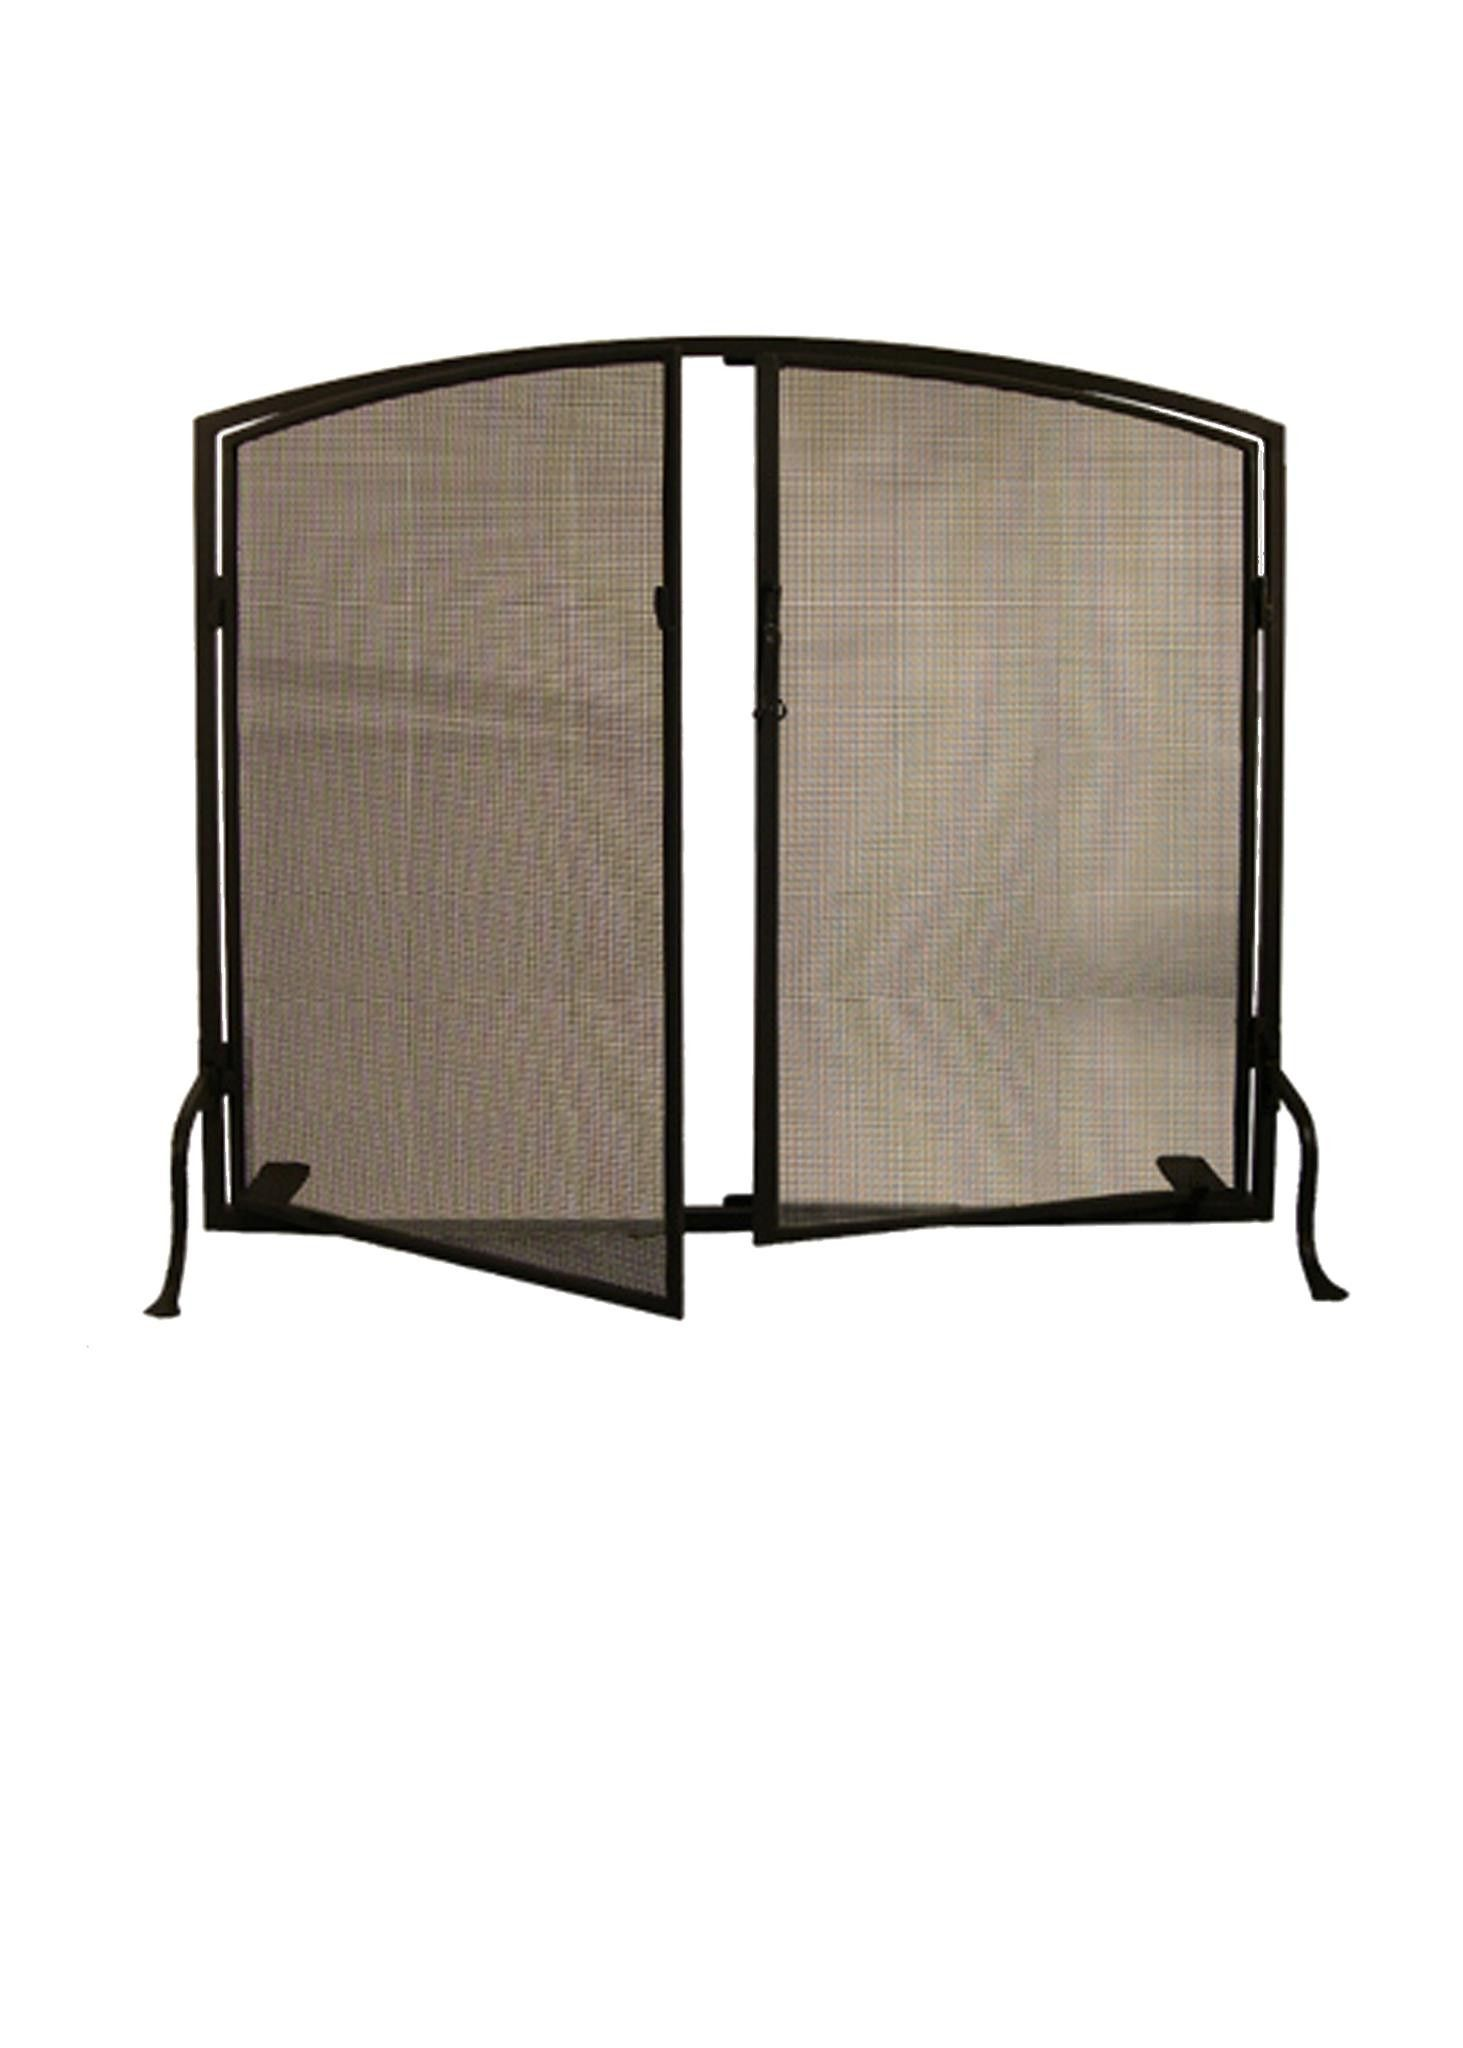 40 inch w x 32 inch h prime arched fireplace screen colors powder